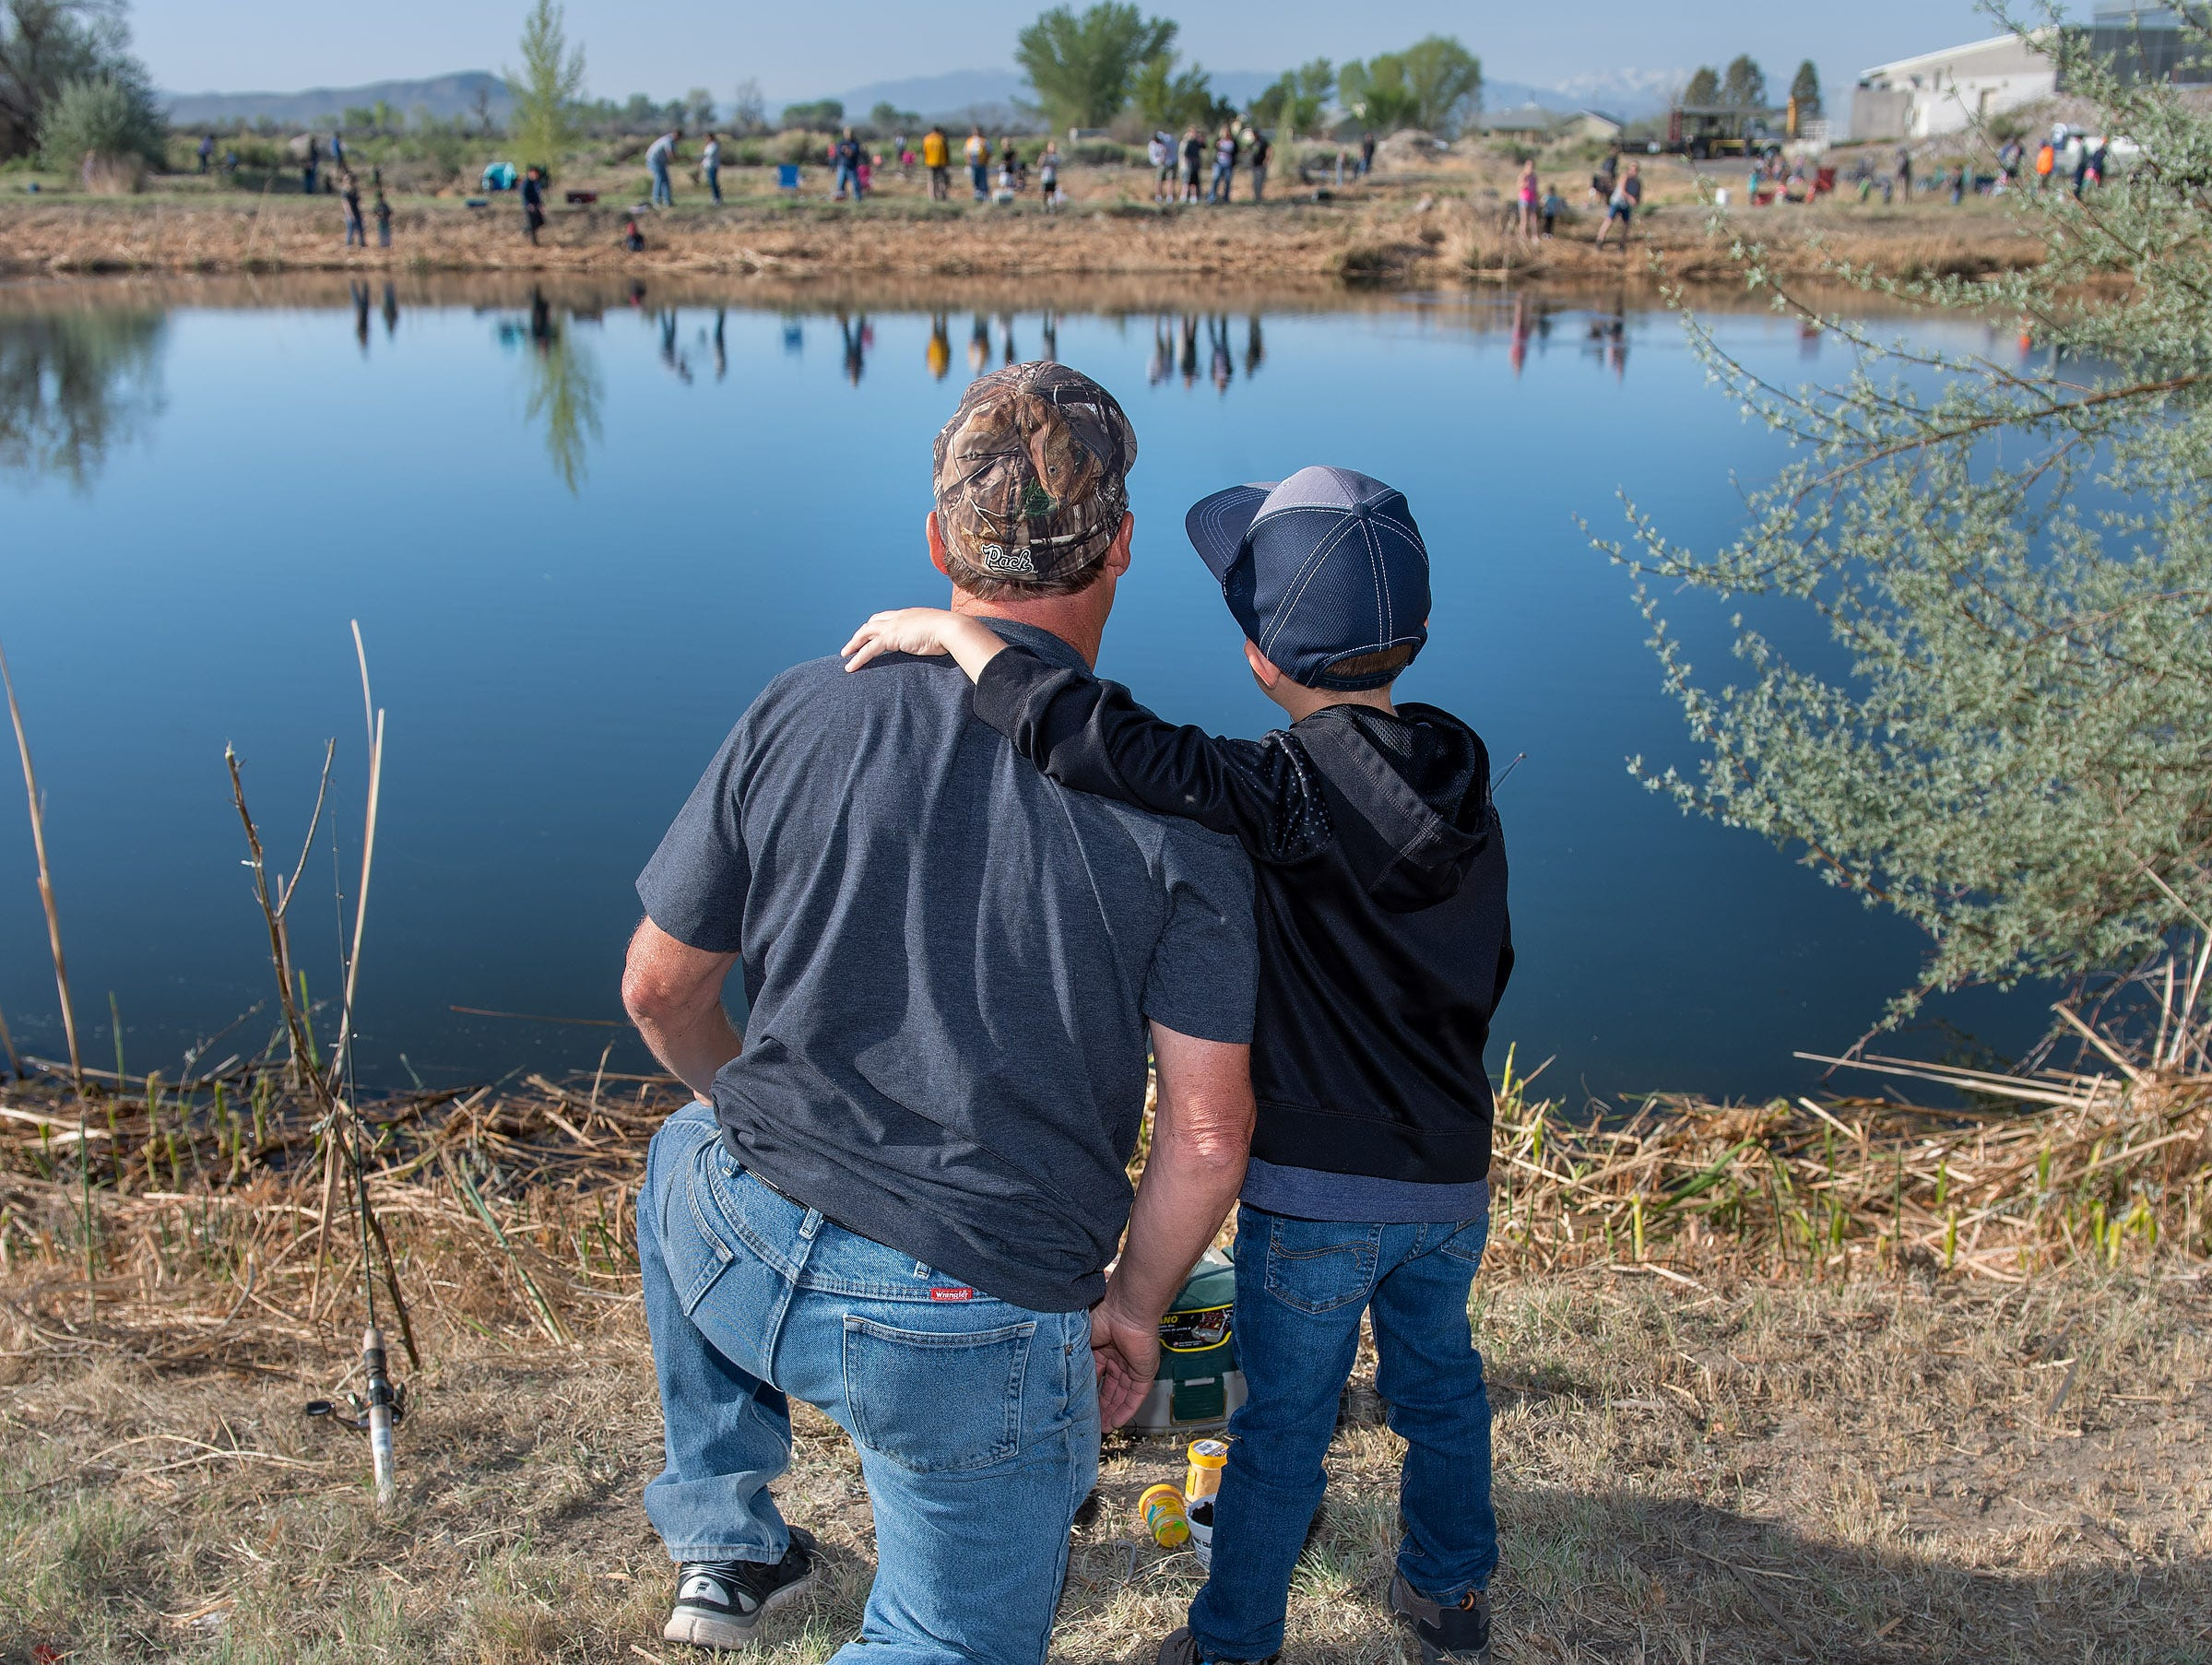 A father and son enjoy the fishing.